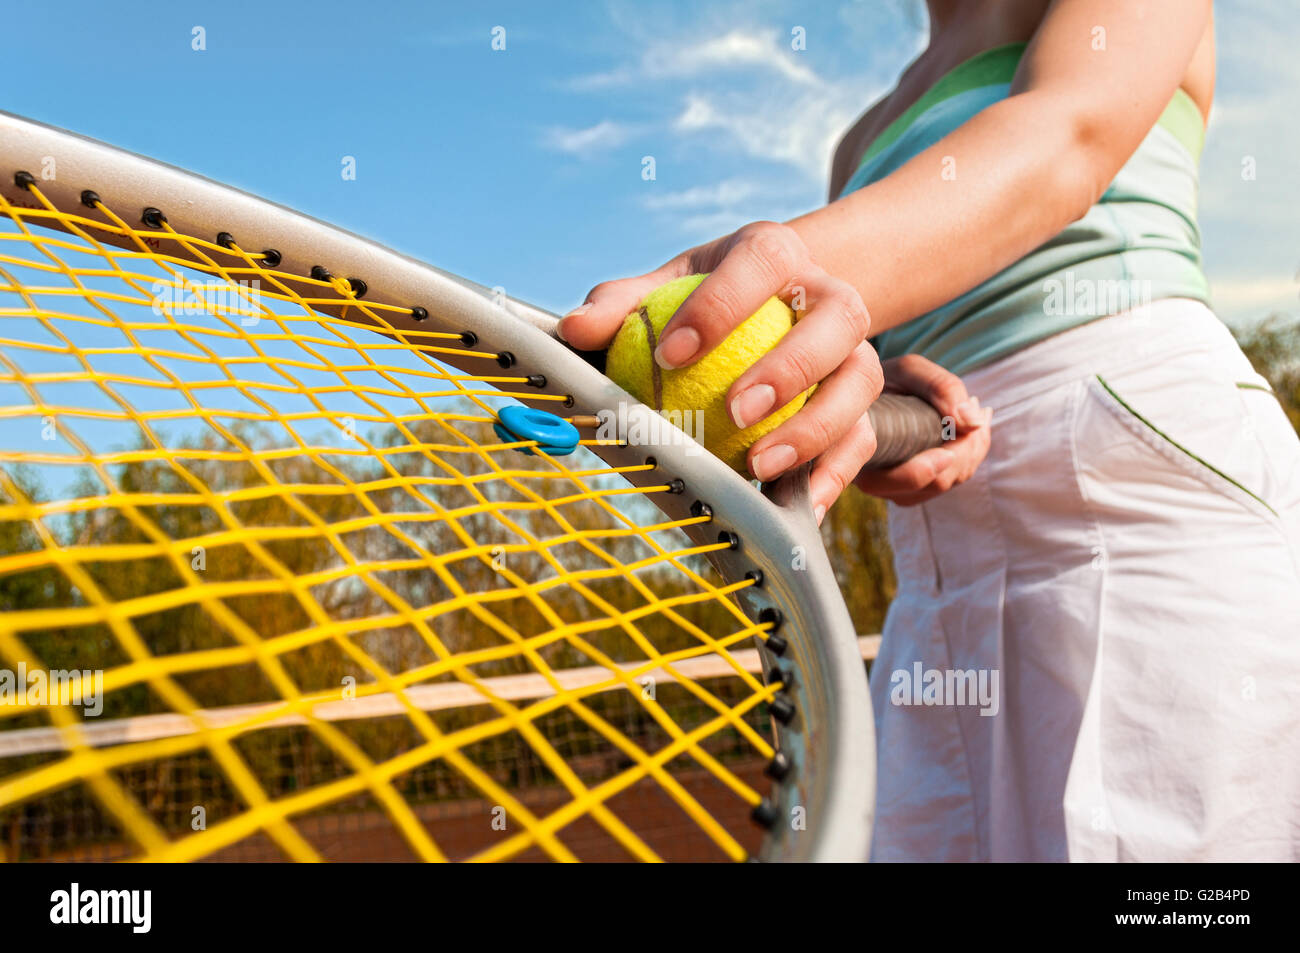 Dynamic tennis concept with female player hand holding ball and racket - Stock Image